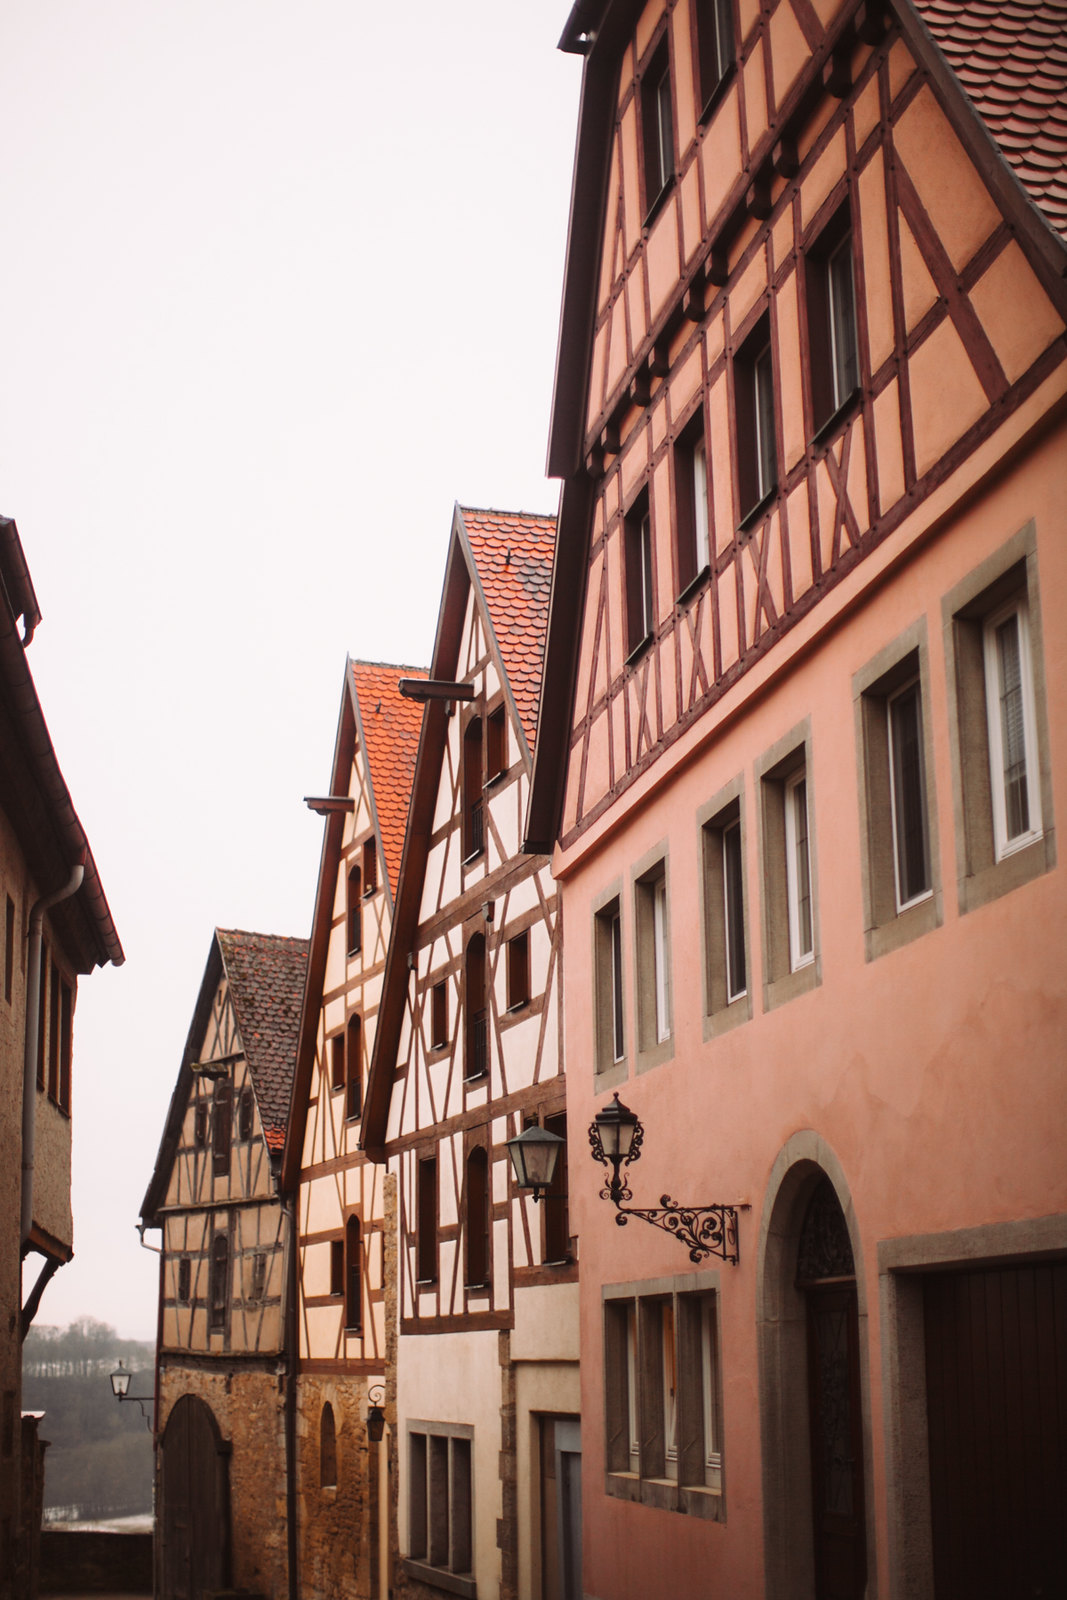 rothenburg-35